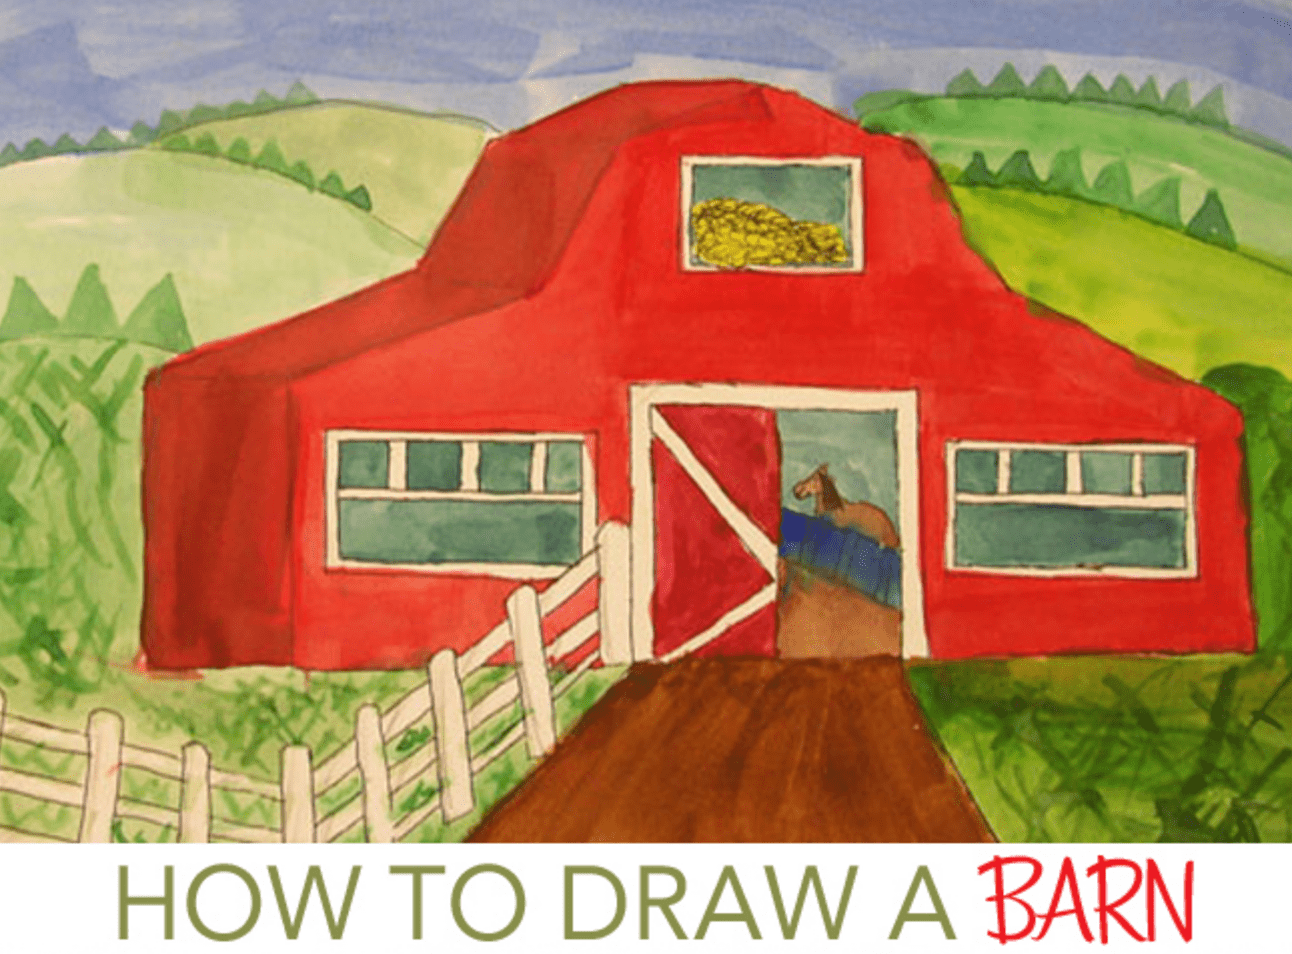 Drawing Barns And Rural Settings